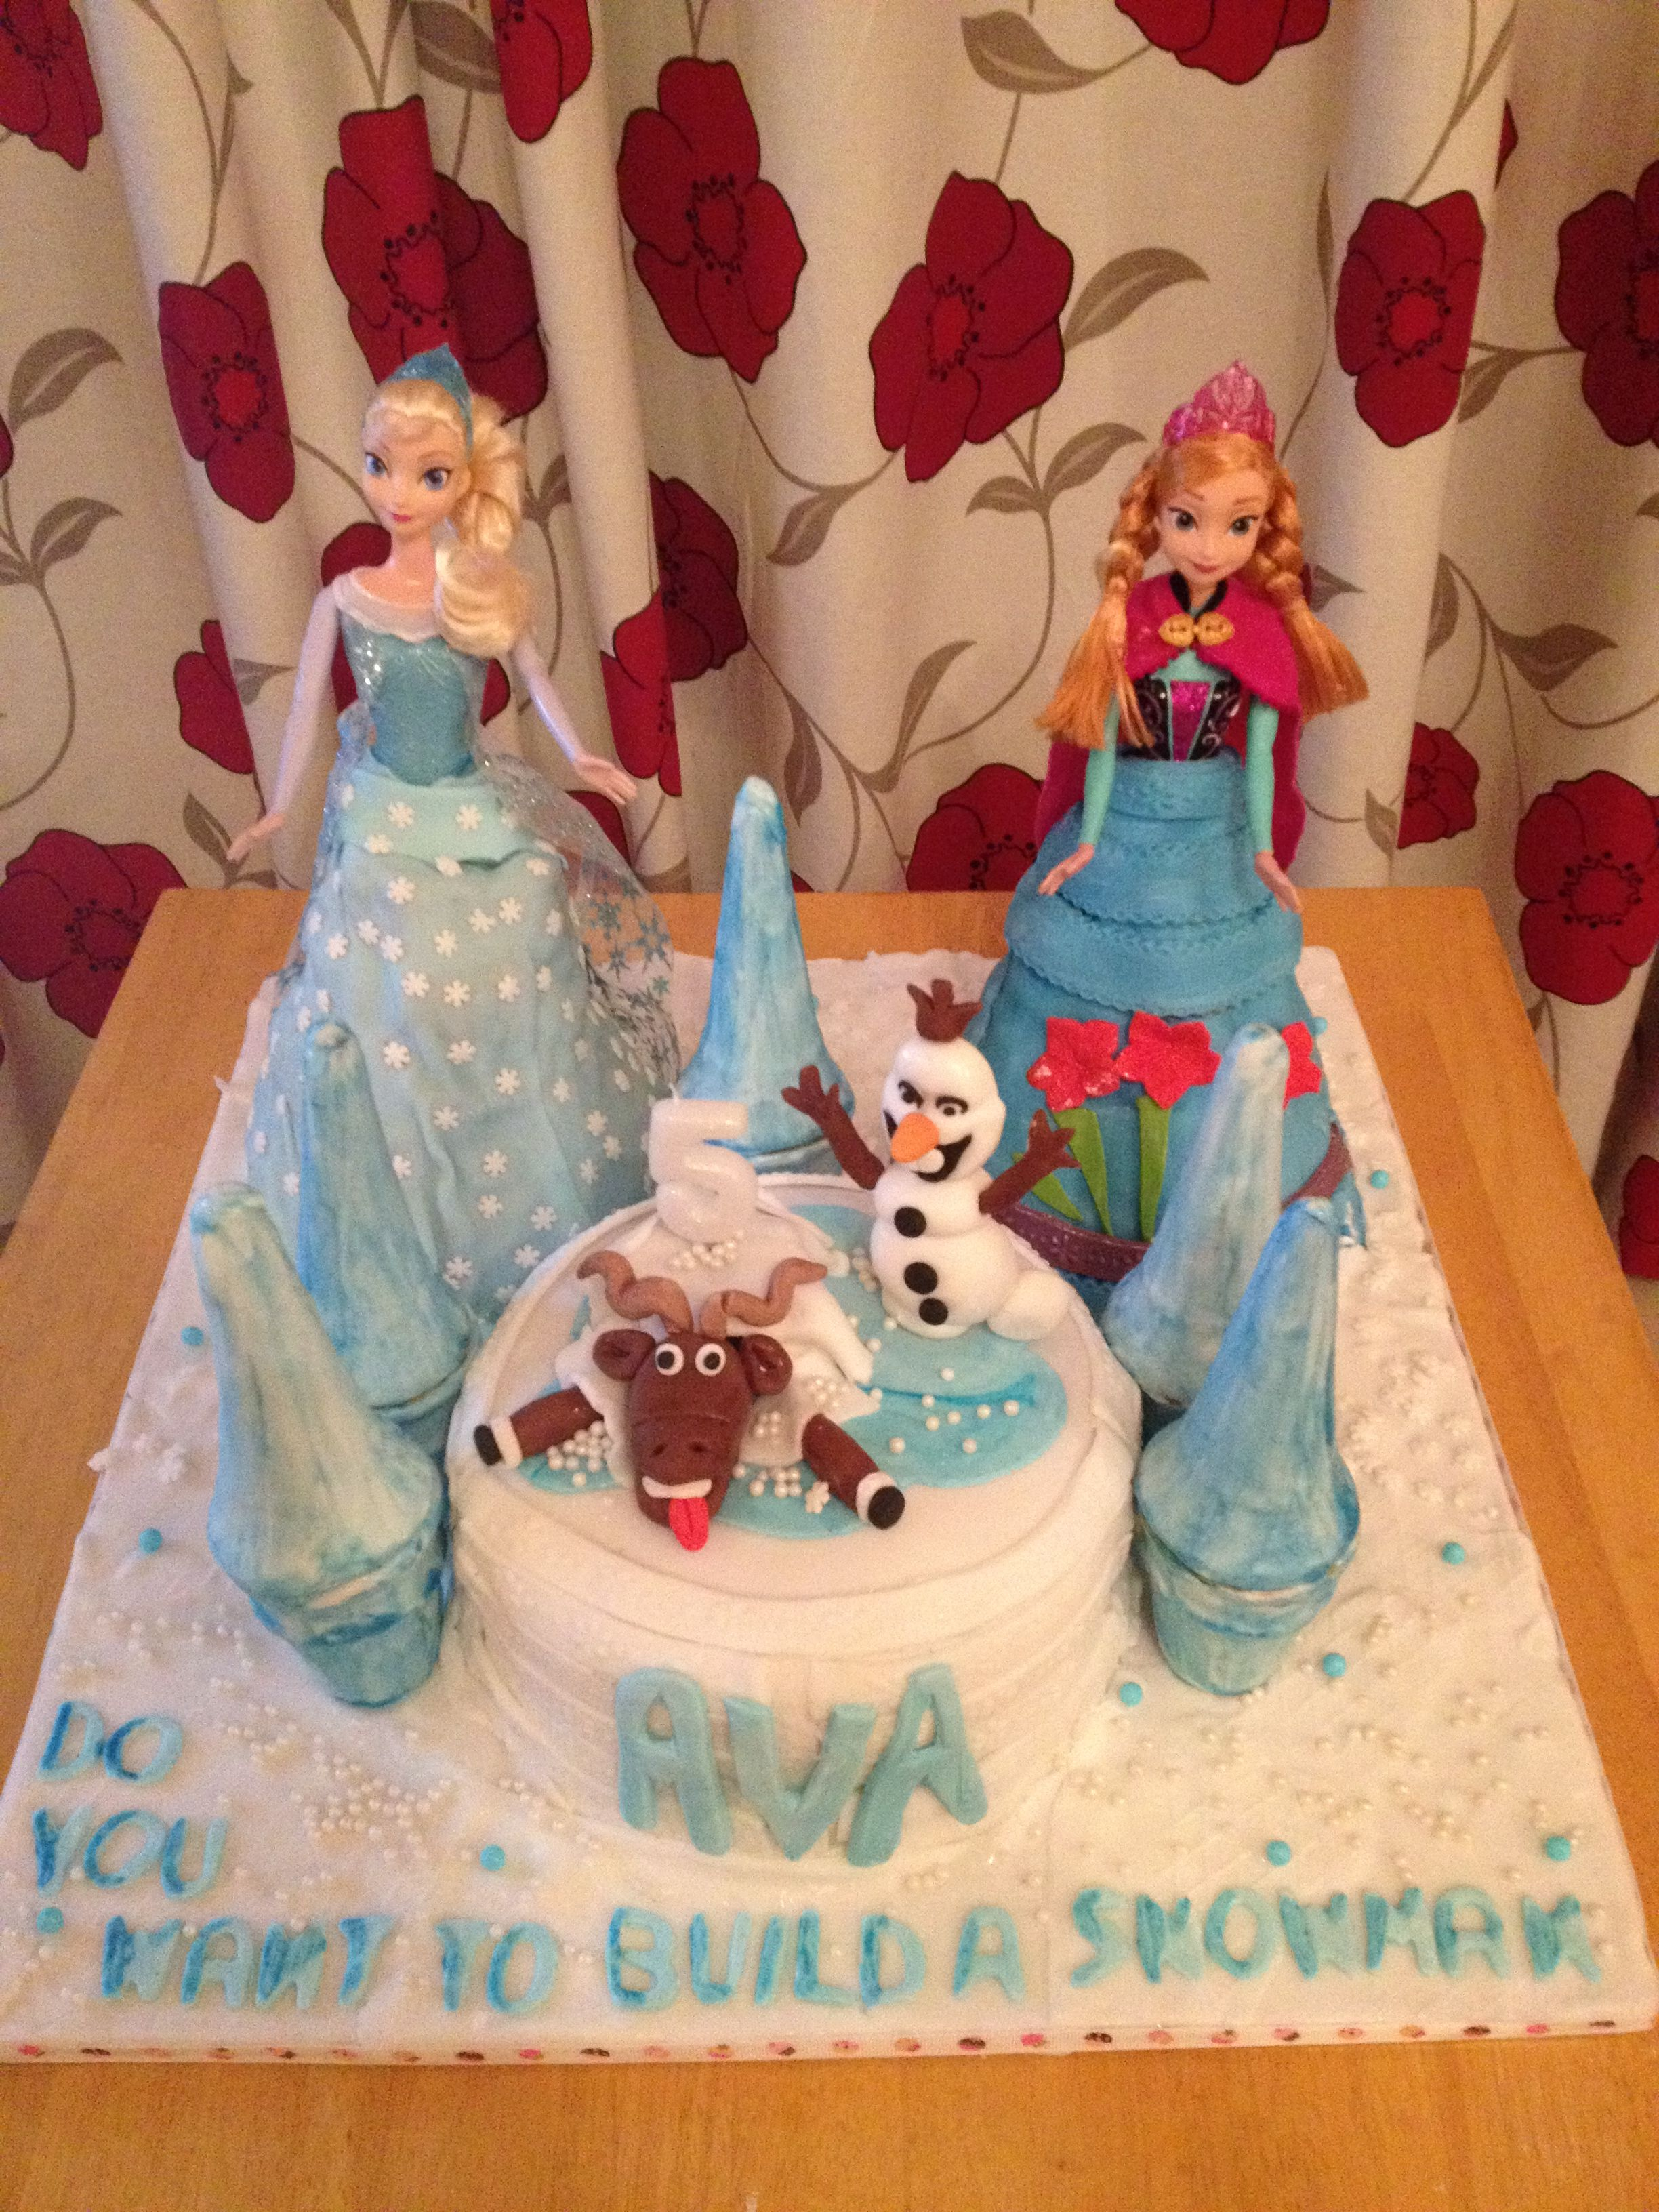 Frozen elsa doll cake  Disney Frozen cake Elsa and Anna doll cake with Sven and Snowman